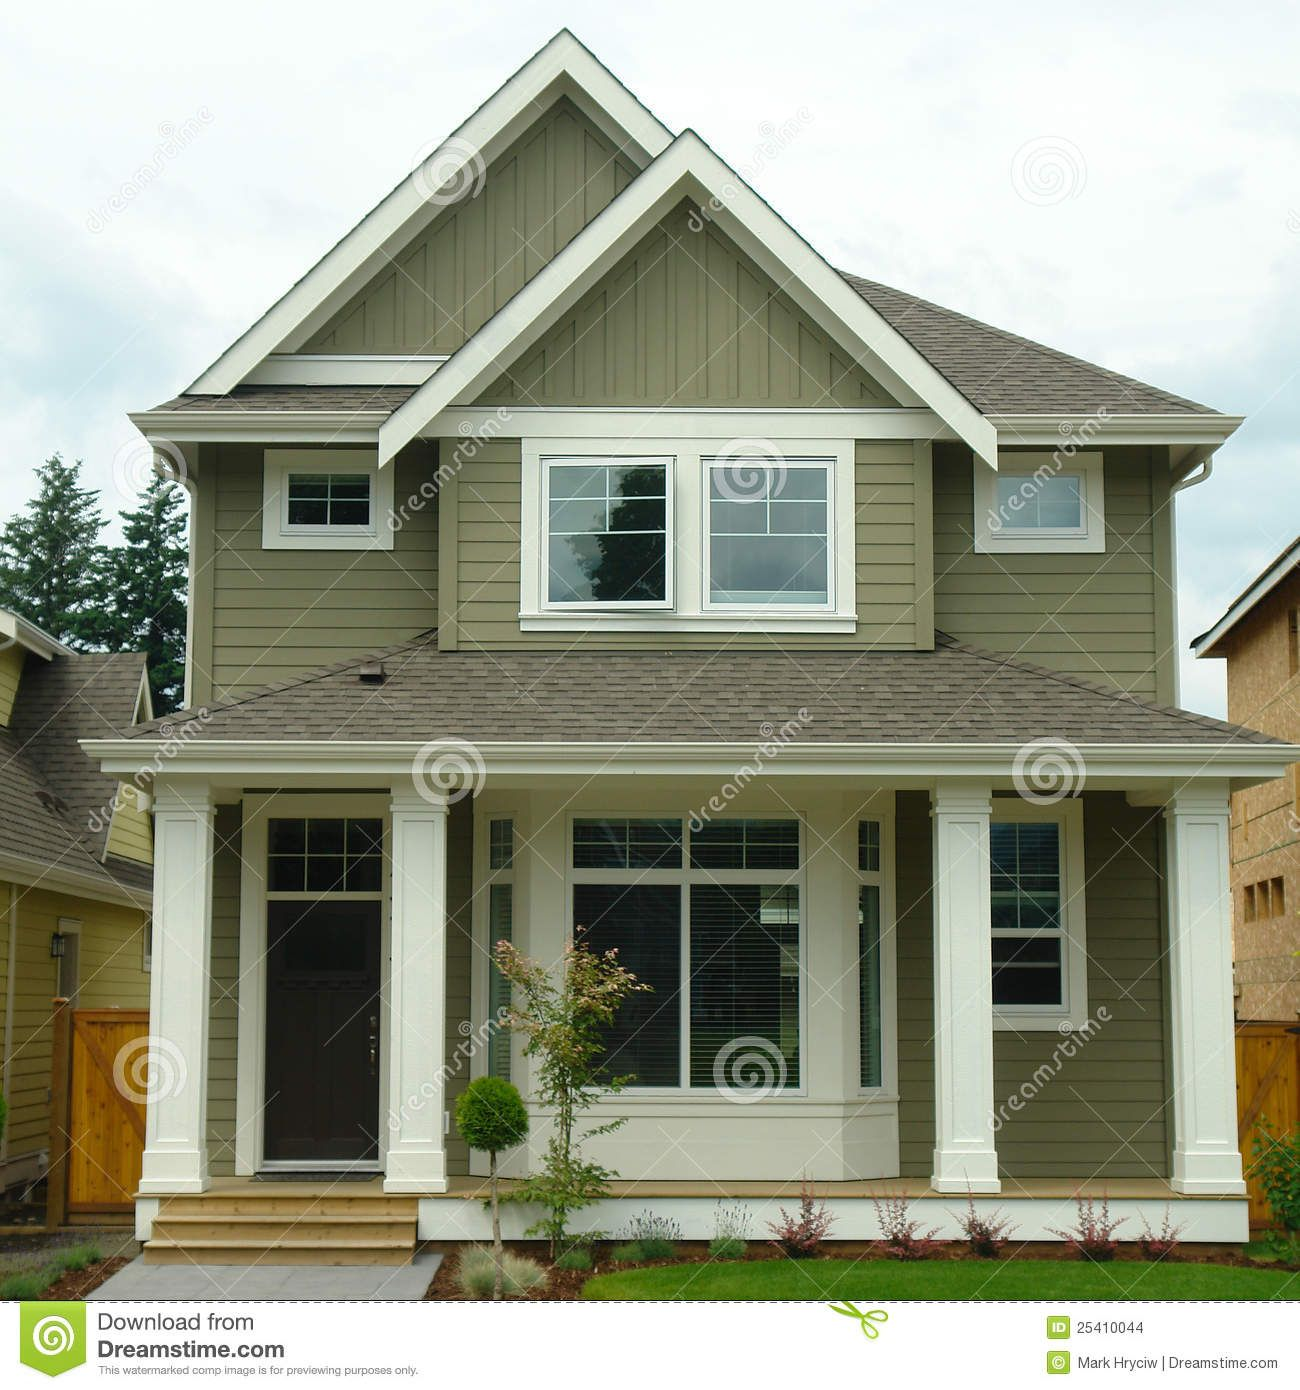 Forest green exterior house color new home house for Green home builders